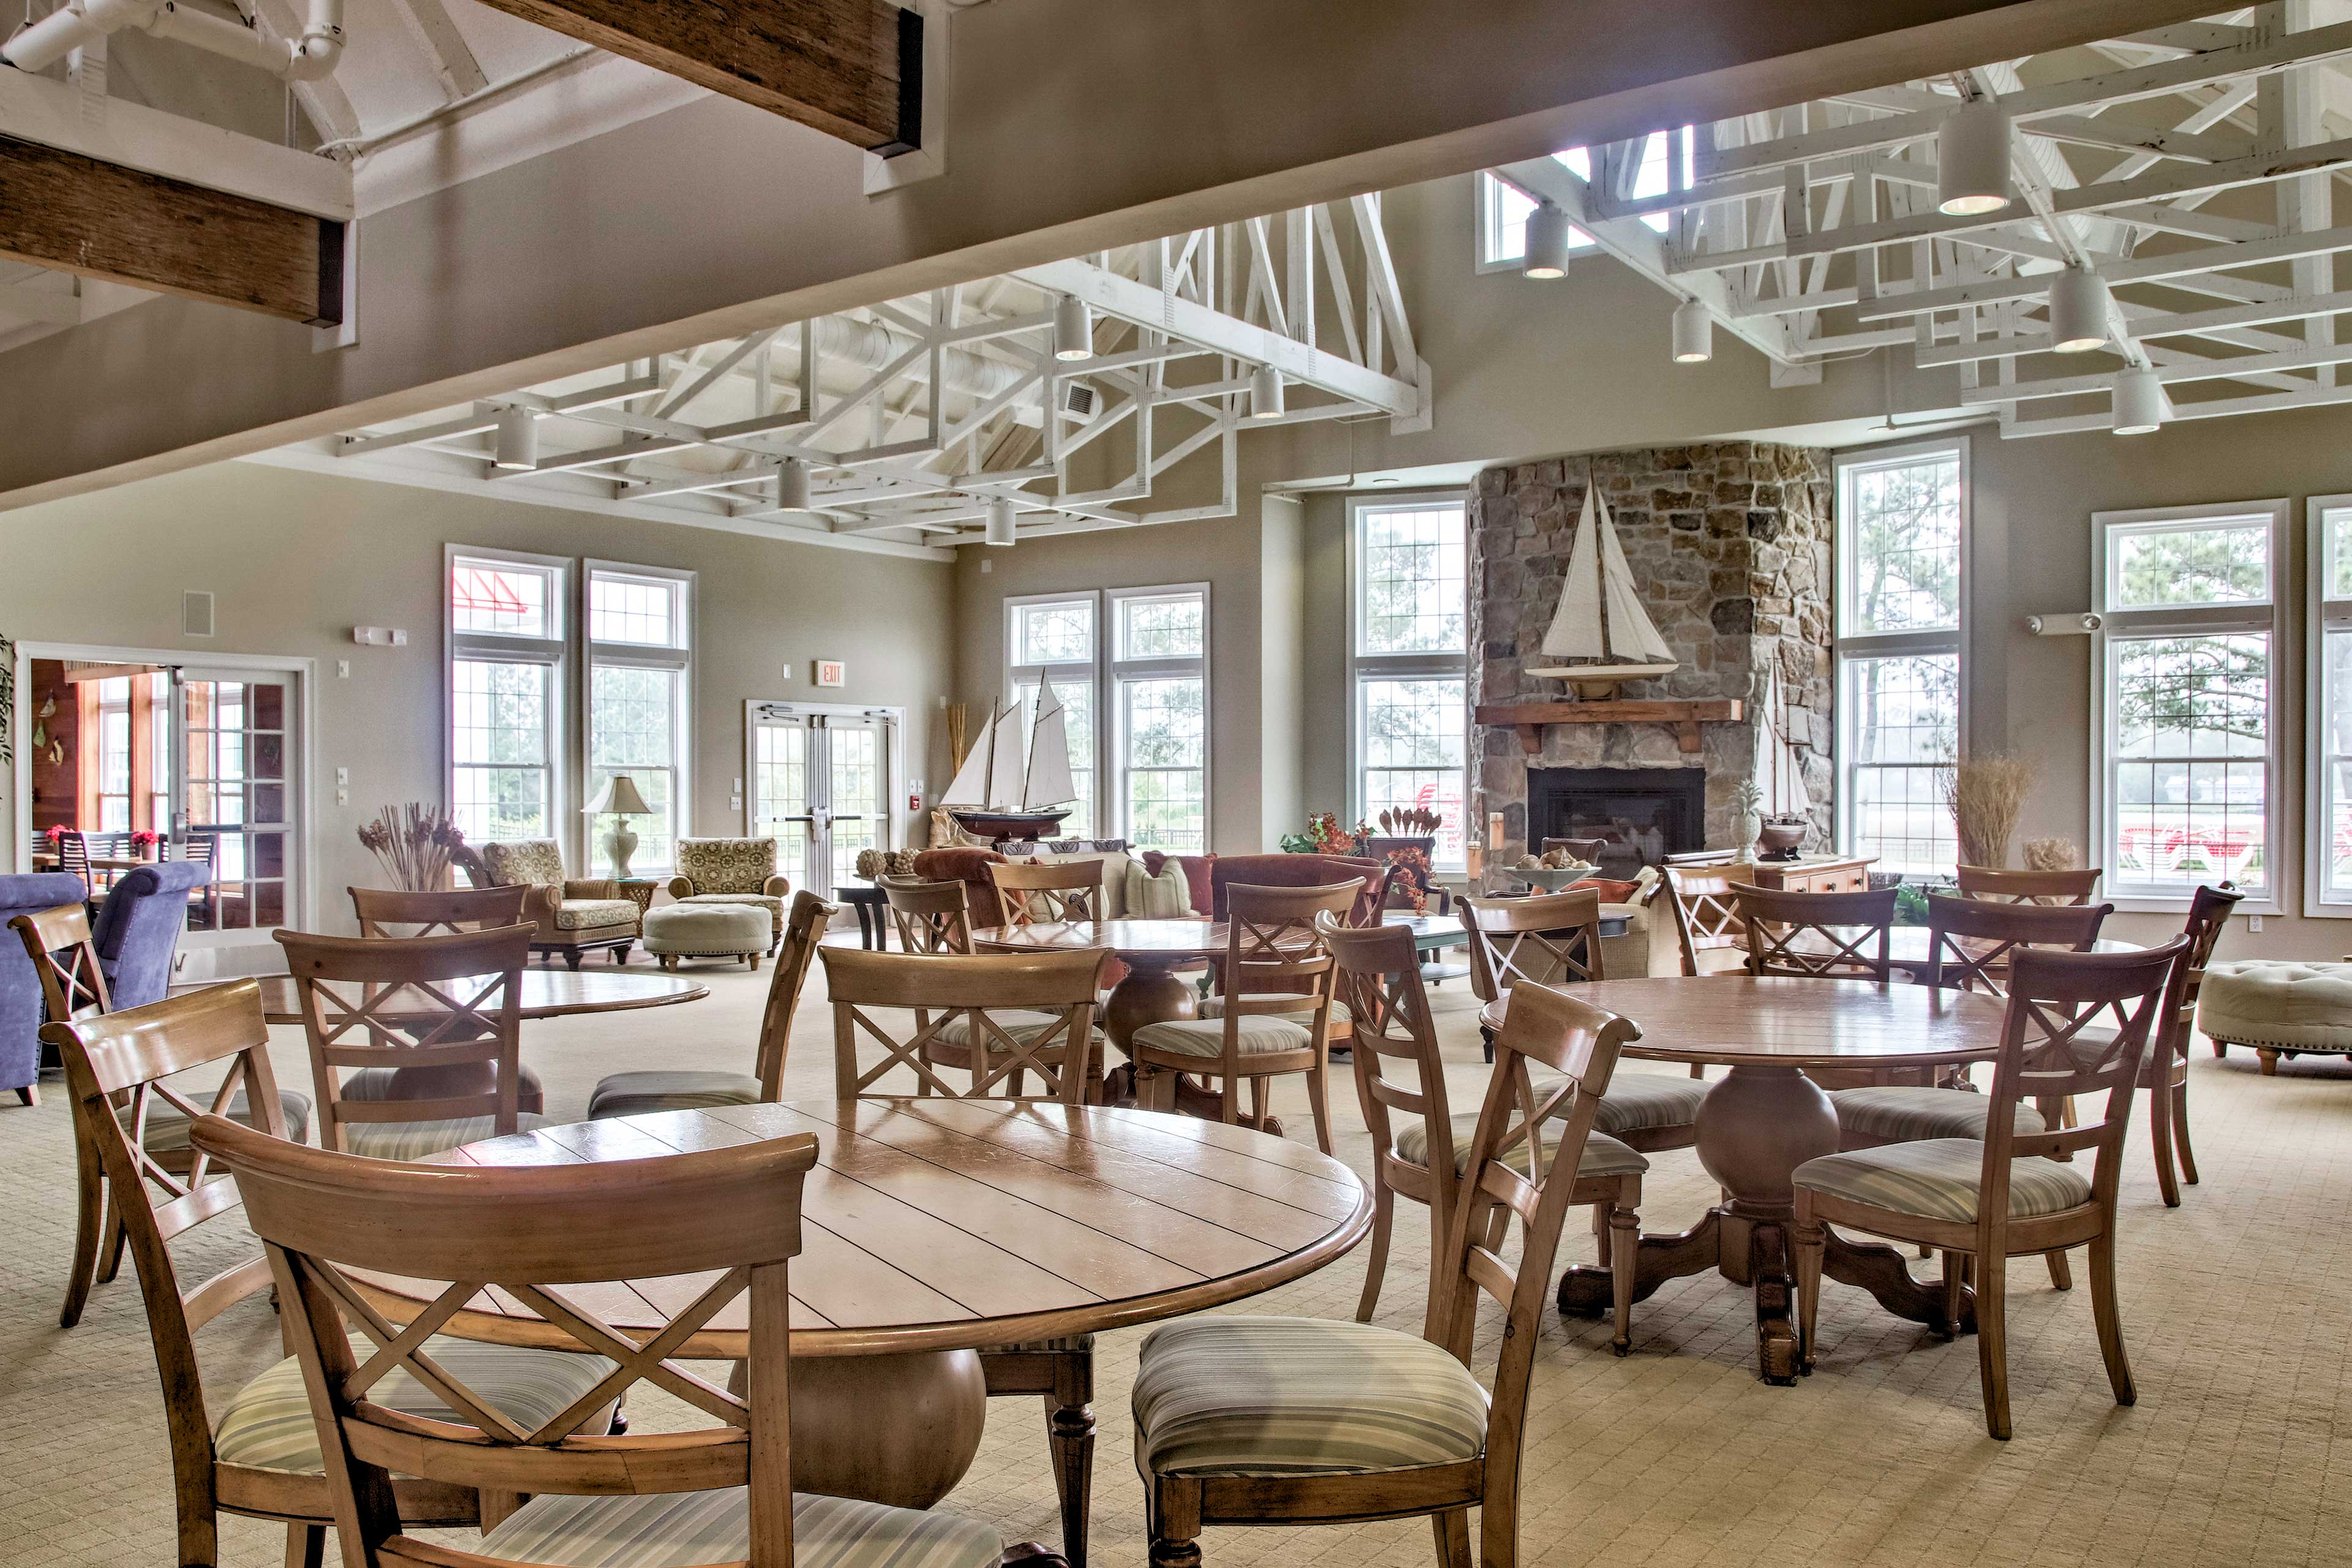 Meet fellow travelers and locals in the clubhouse great room.